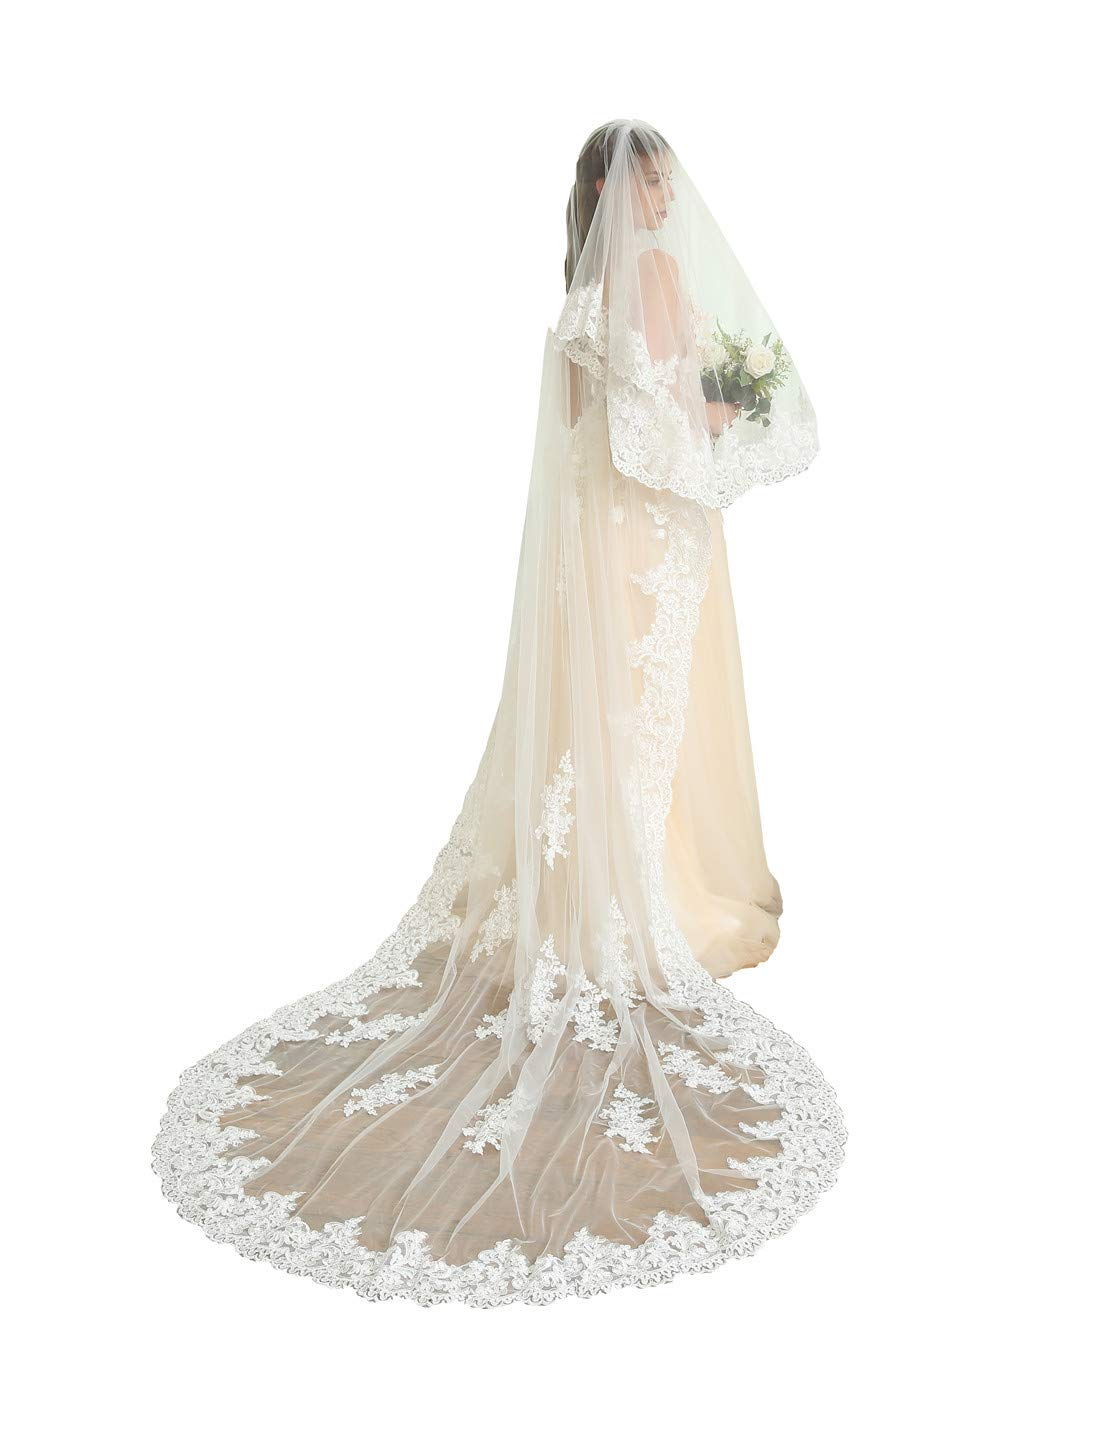 Kelaixiang 2T 2 Tiers Lace Edge Wedding Veil Cathedral Length (White, 4m length)